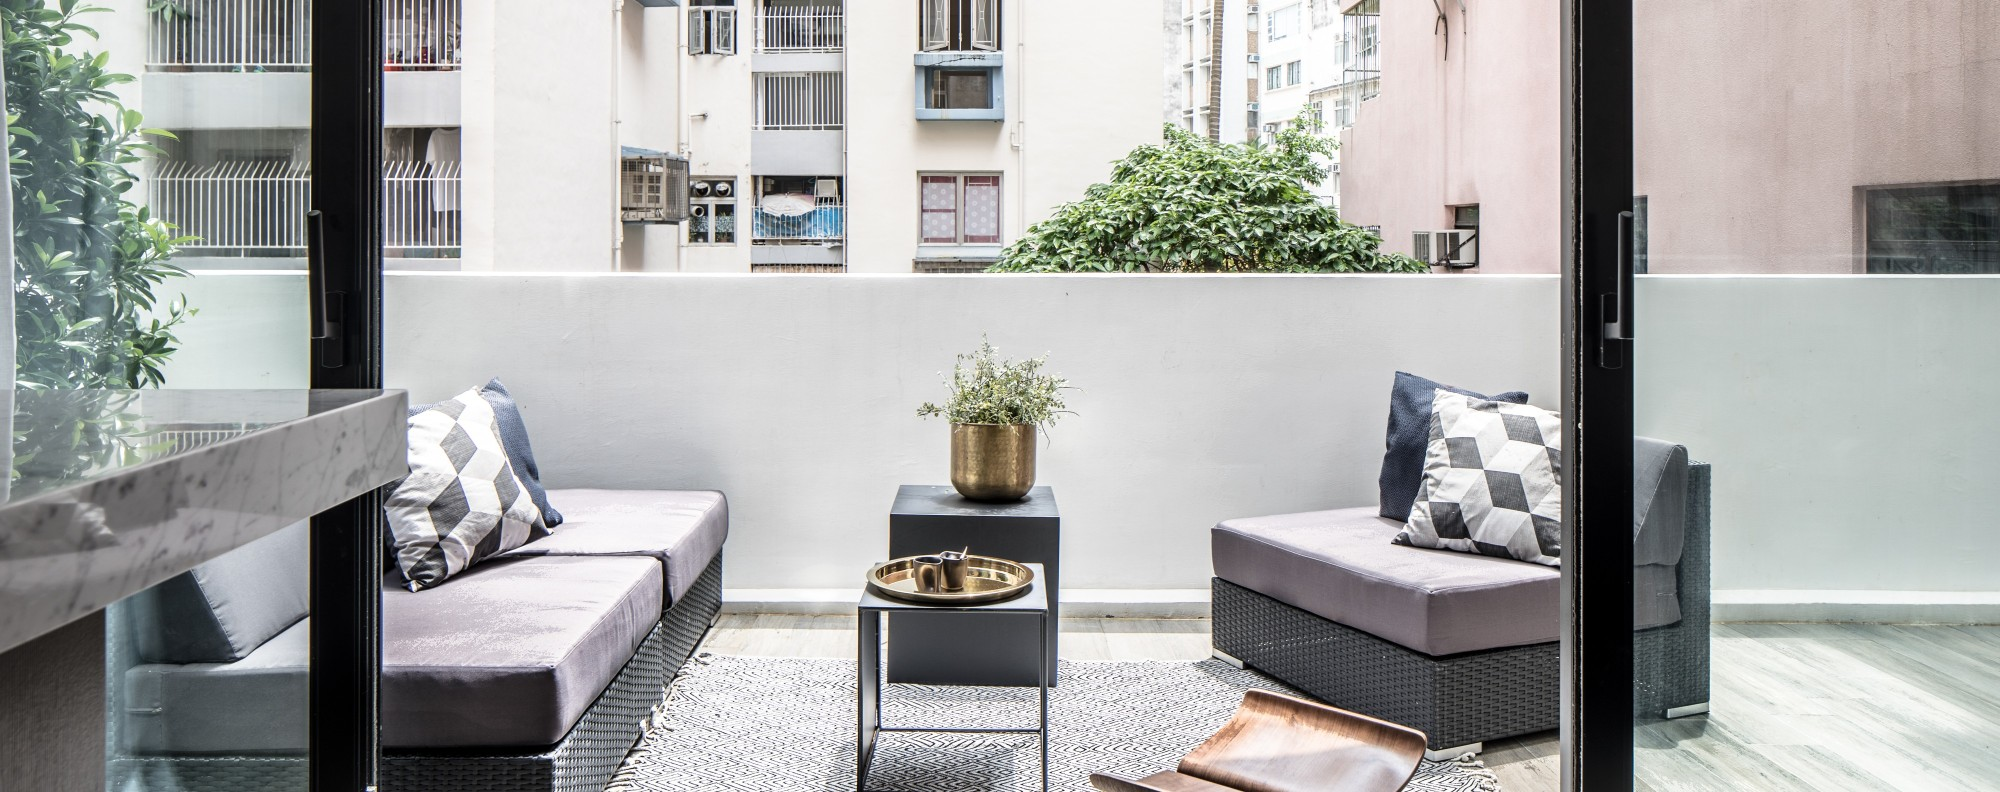 Small hong kong flat with a 600 sq ft terrace shows how to for Interior design 600 sq ft flat